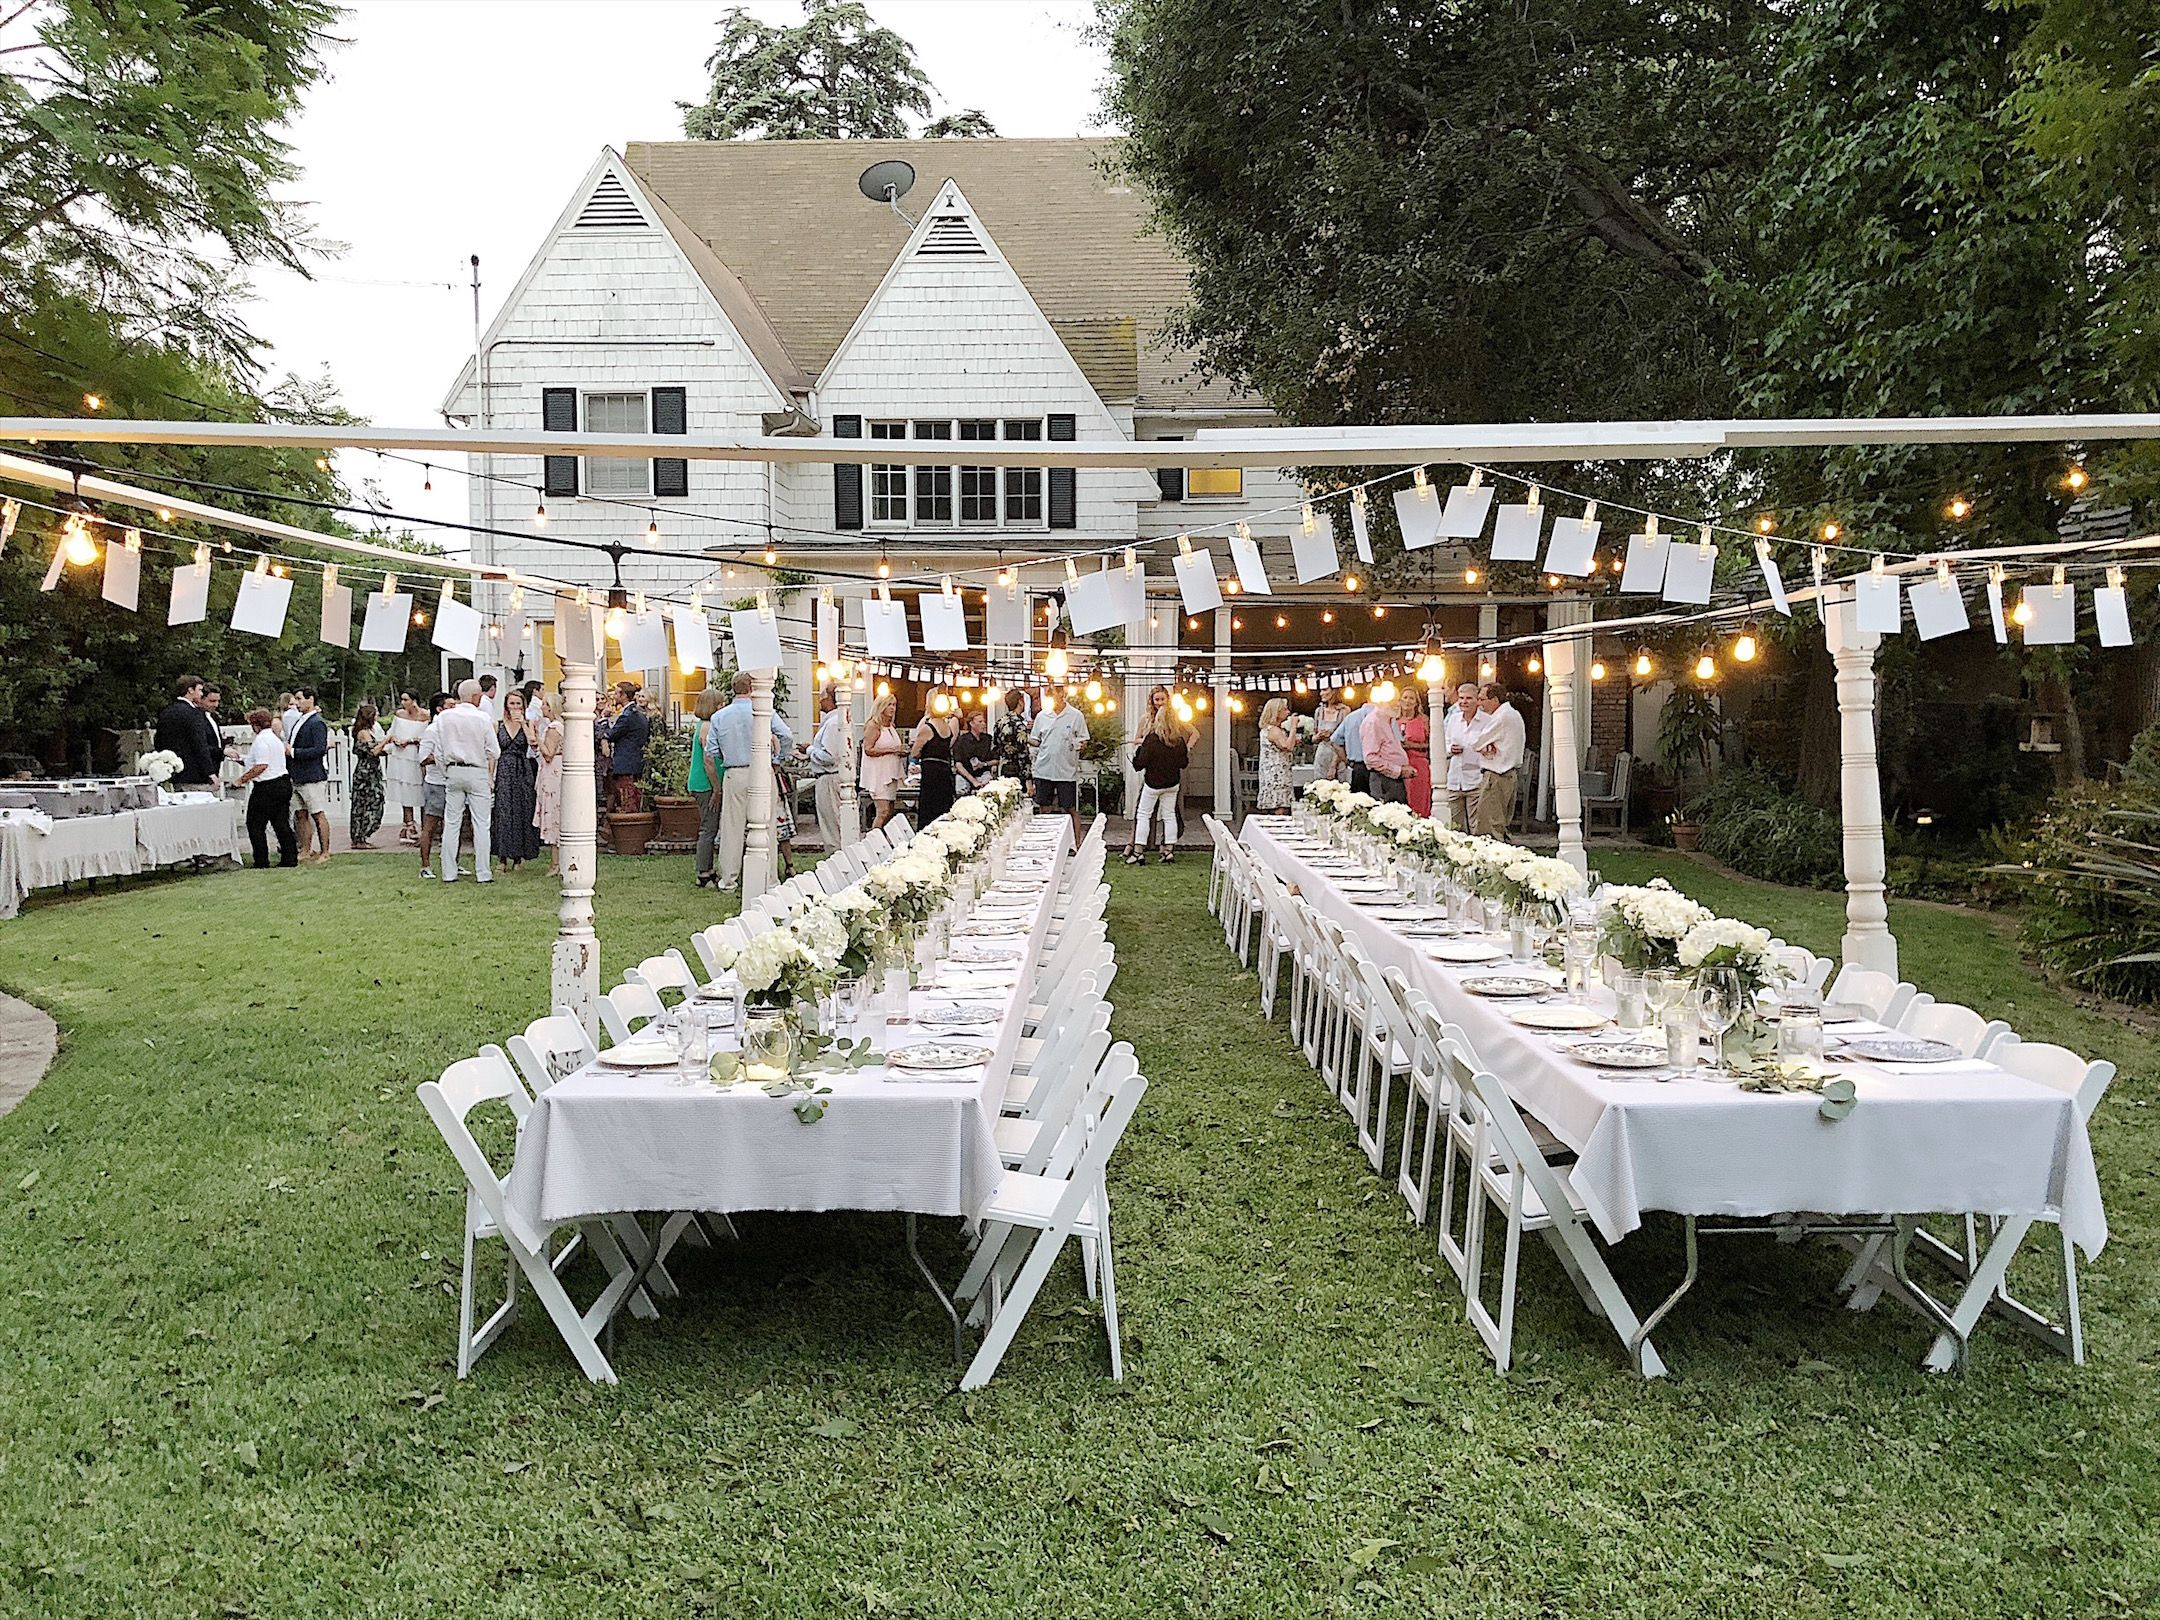 How To Plan The Party Of Your Dreams Backyard Engagement Parties Outdoor Engagement Party Outdoor Dinner Parties Diy backyard engagement party